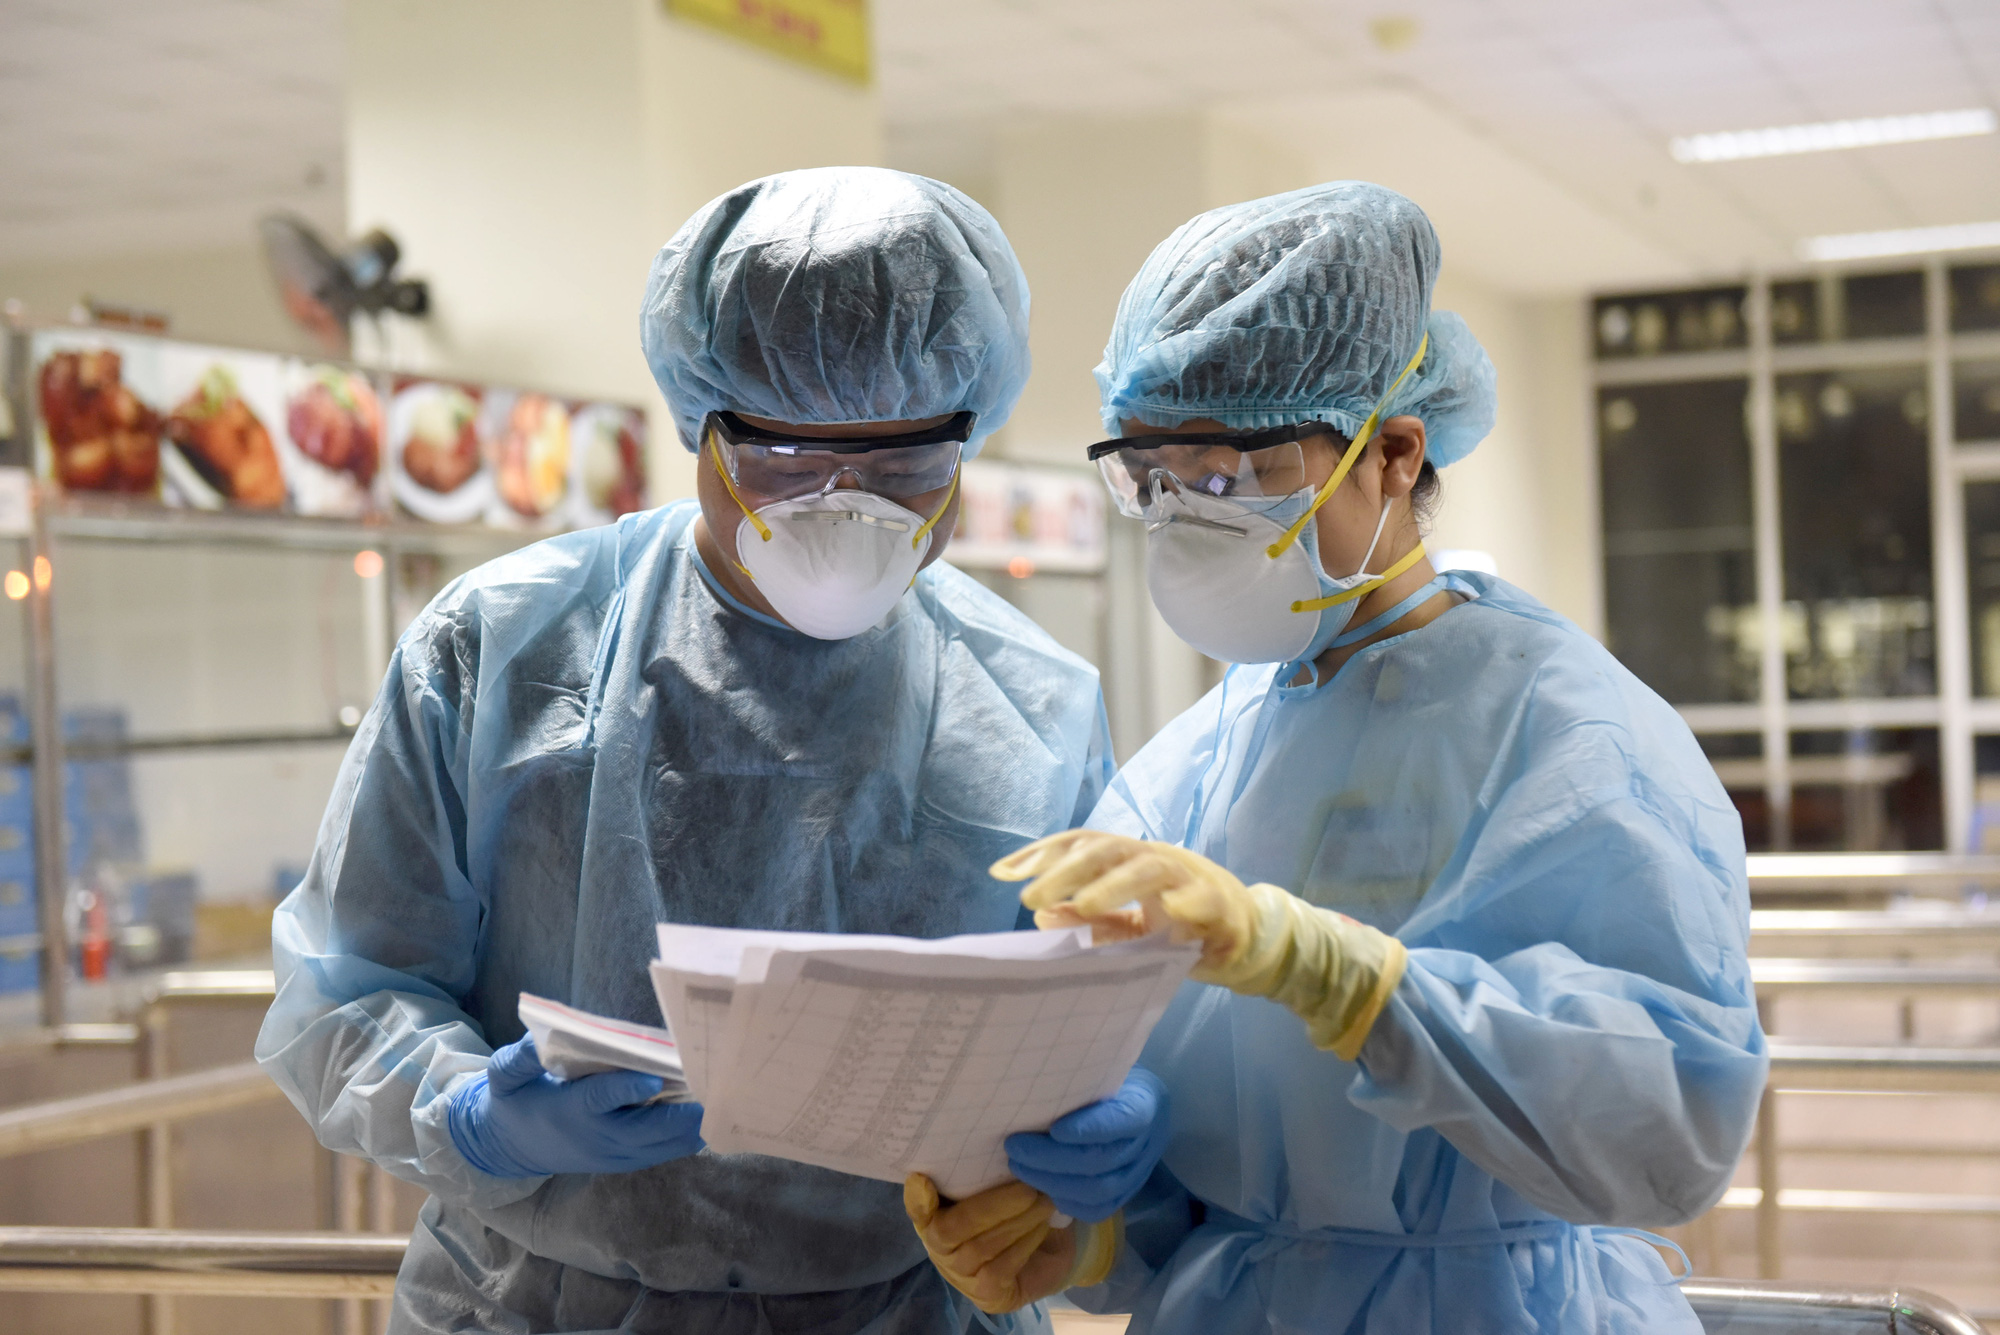 AmCham Vietnam donates 250,000 face masks to frontline health workers in Ho Chi Minh City